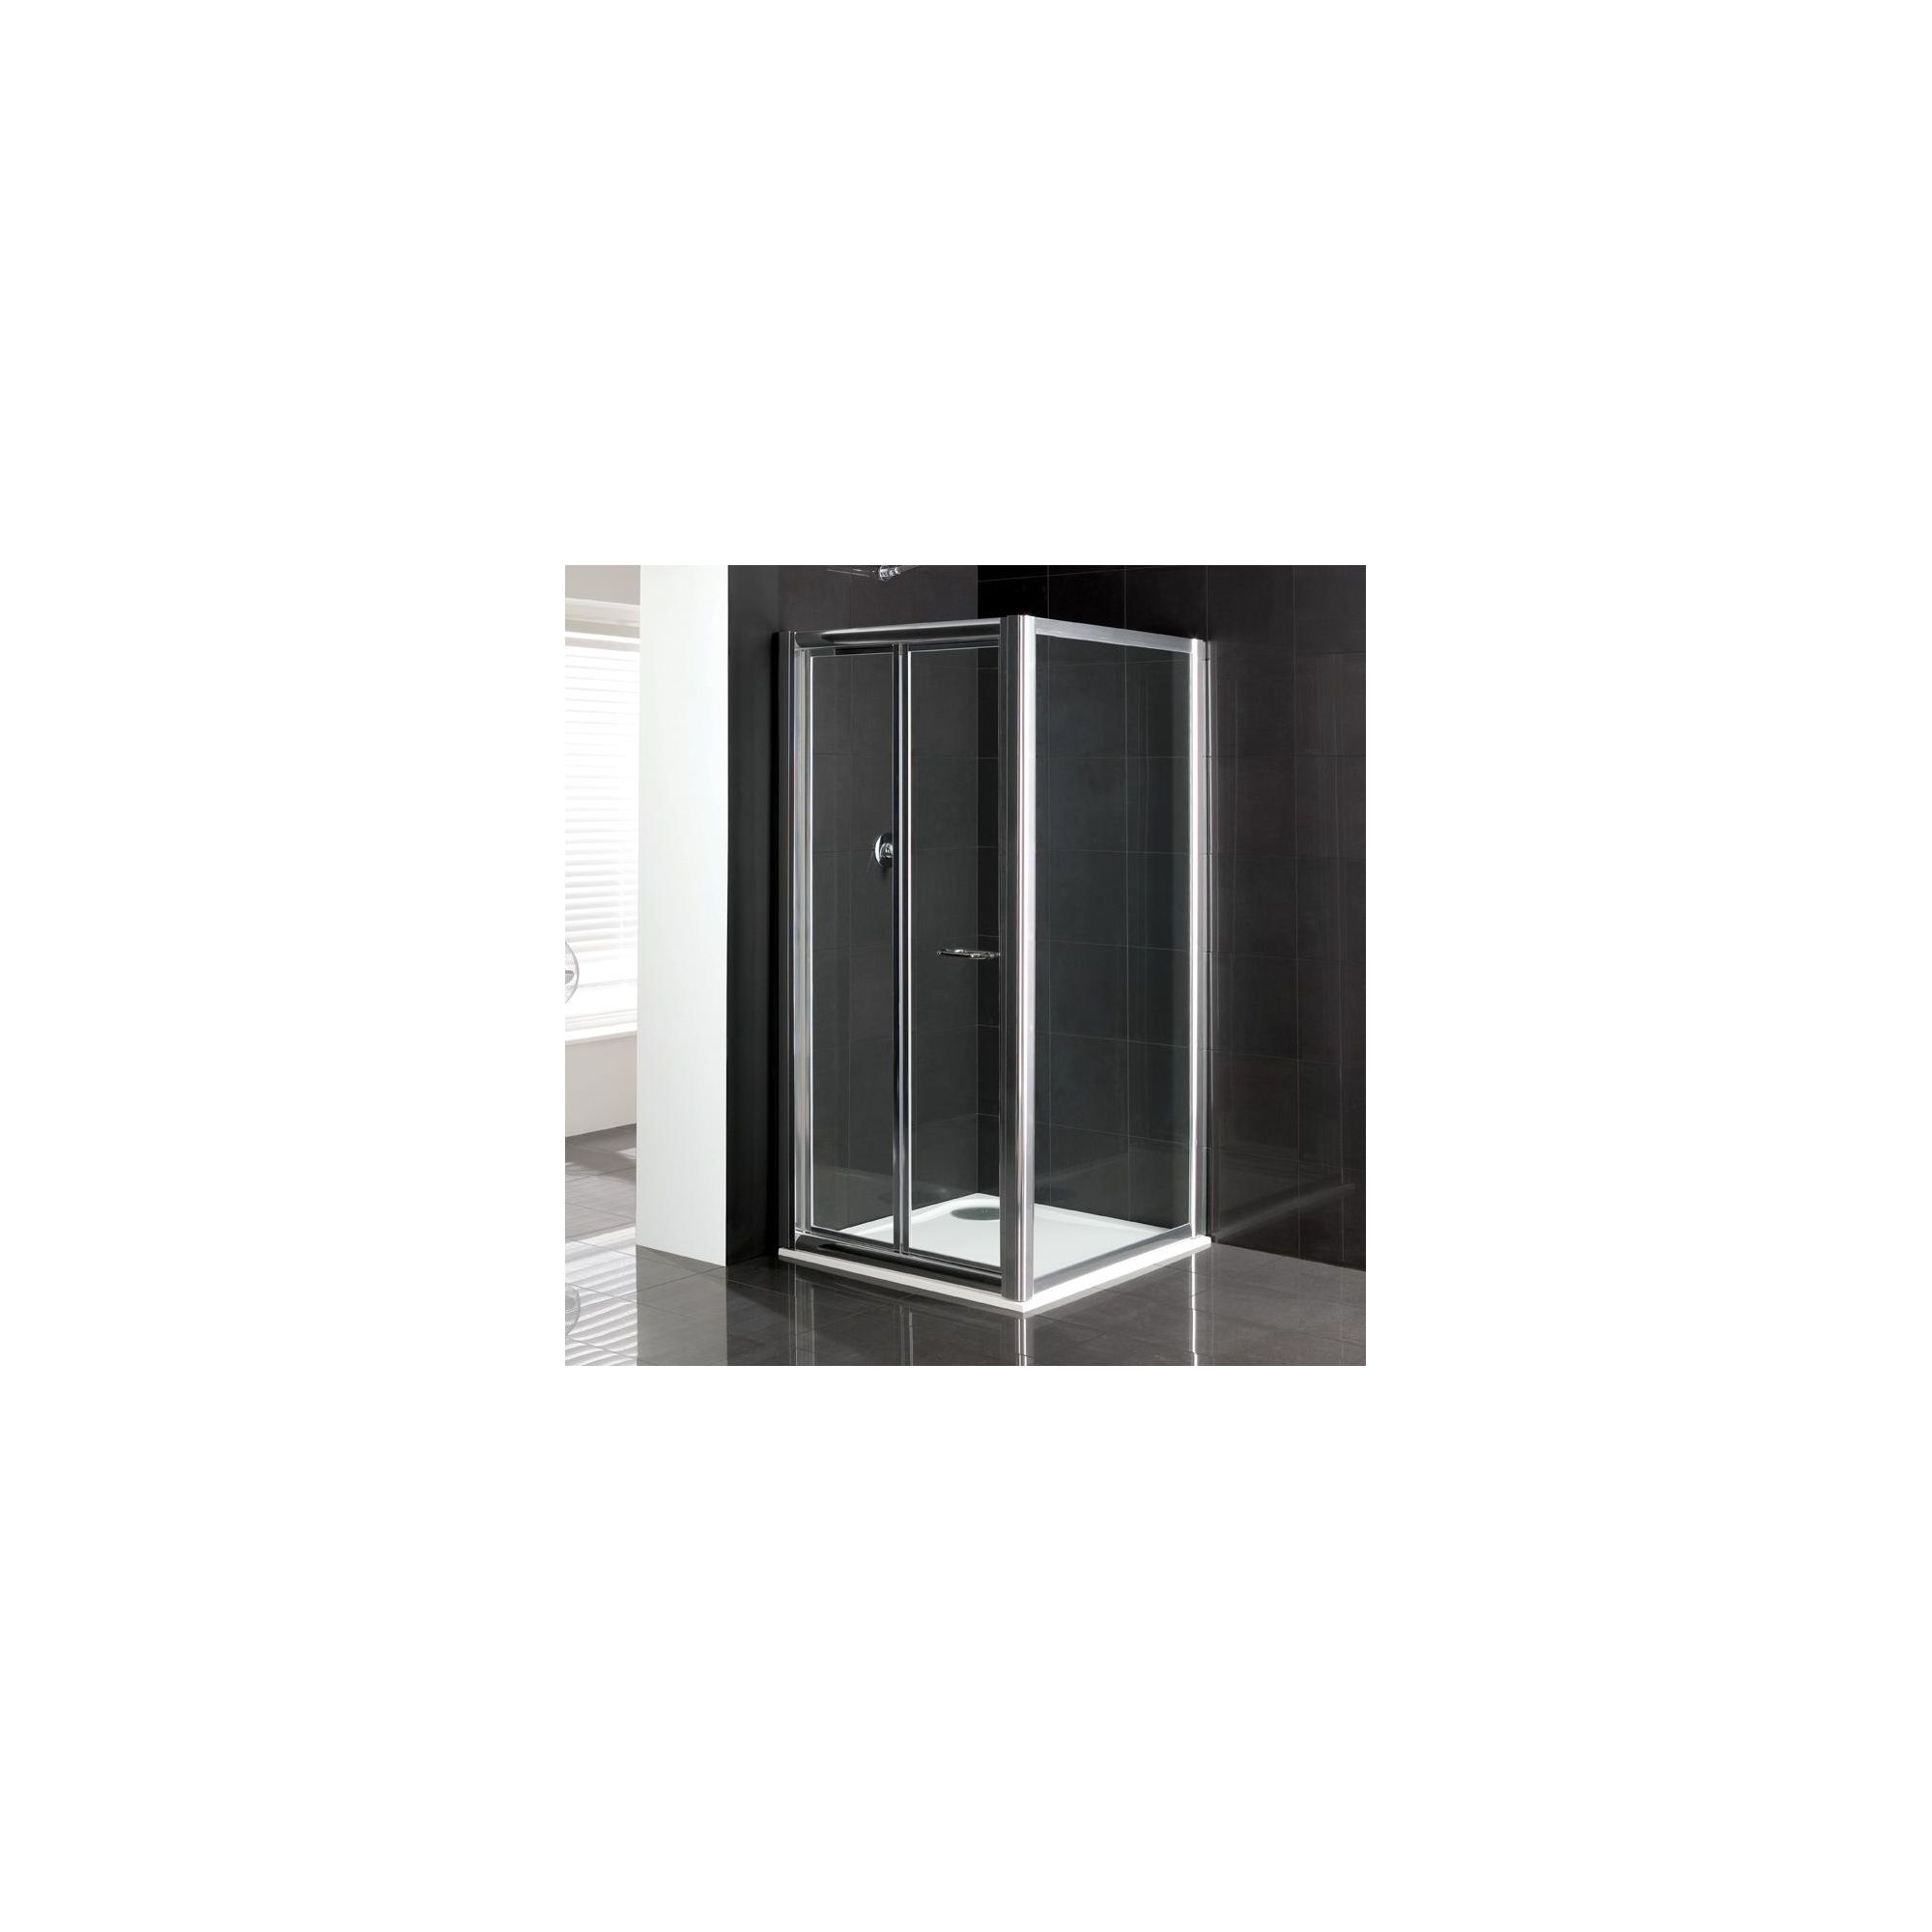 Duchy Elite Silver Bi-Fold Door Shower Enclosure, 800mm x 760mm, Standard Tray, 6mm Glass at Tesco Direct